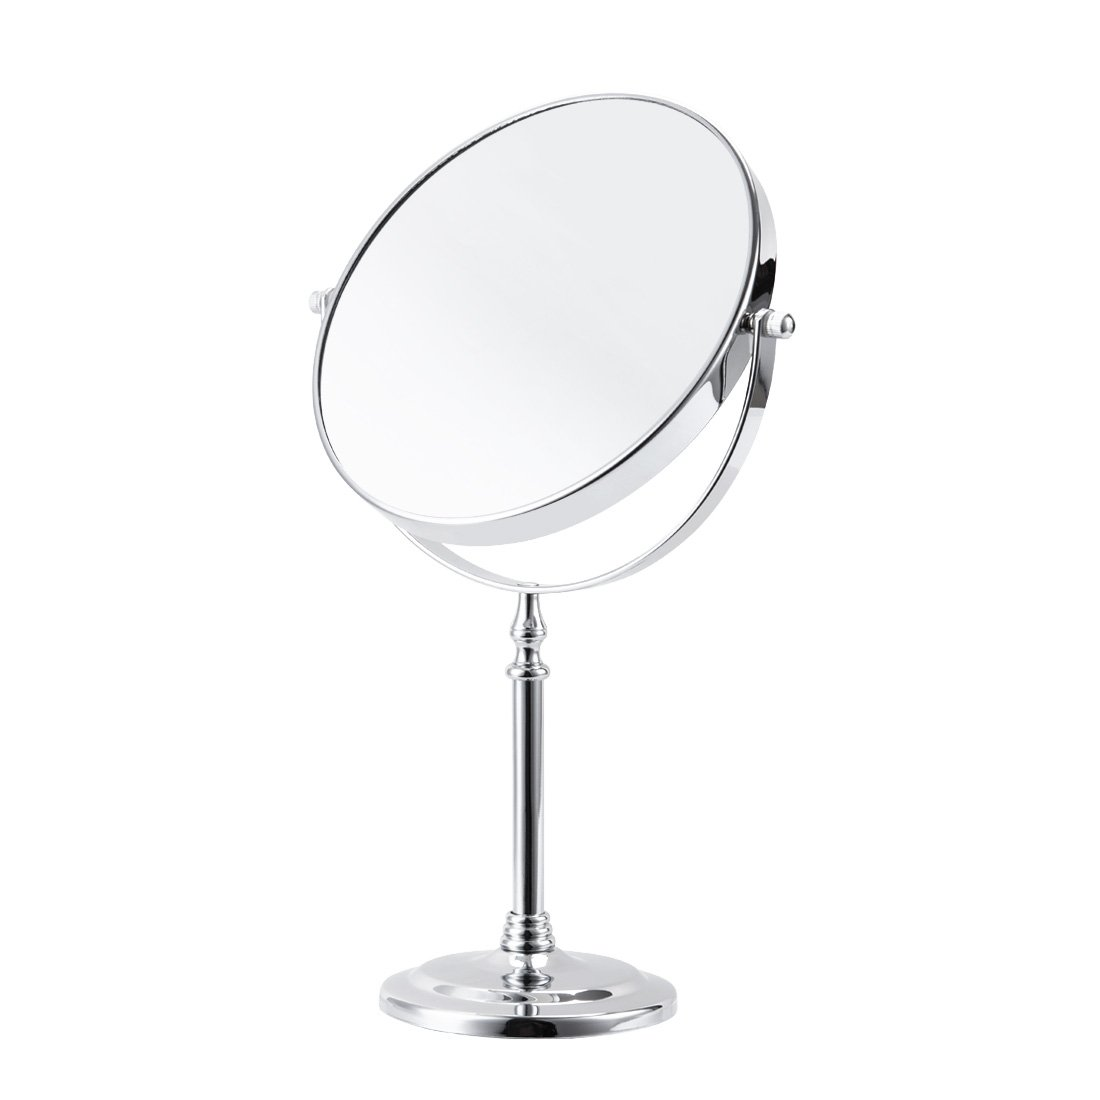 FIRMLOC Makeup Vanity Mirror 7X Magnifying Double-Side Tabletop Swivel Comestic Mirror Chrome Finish 15-inch Height Silver